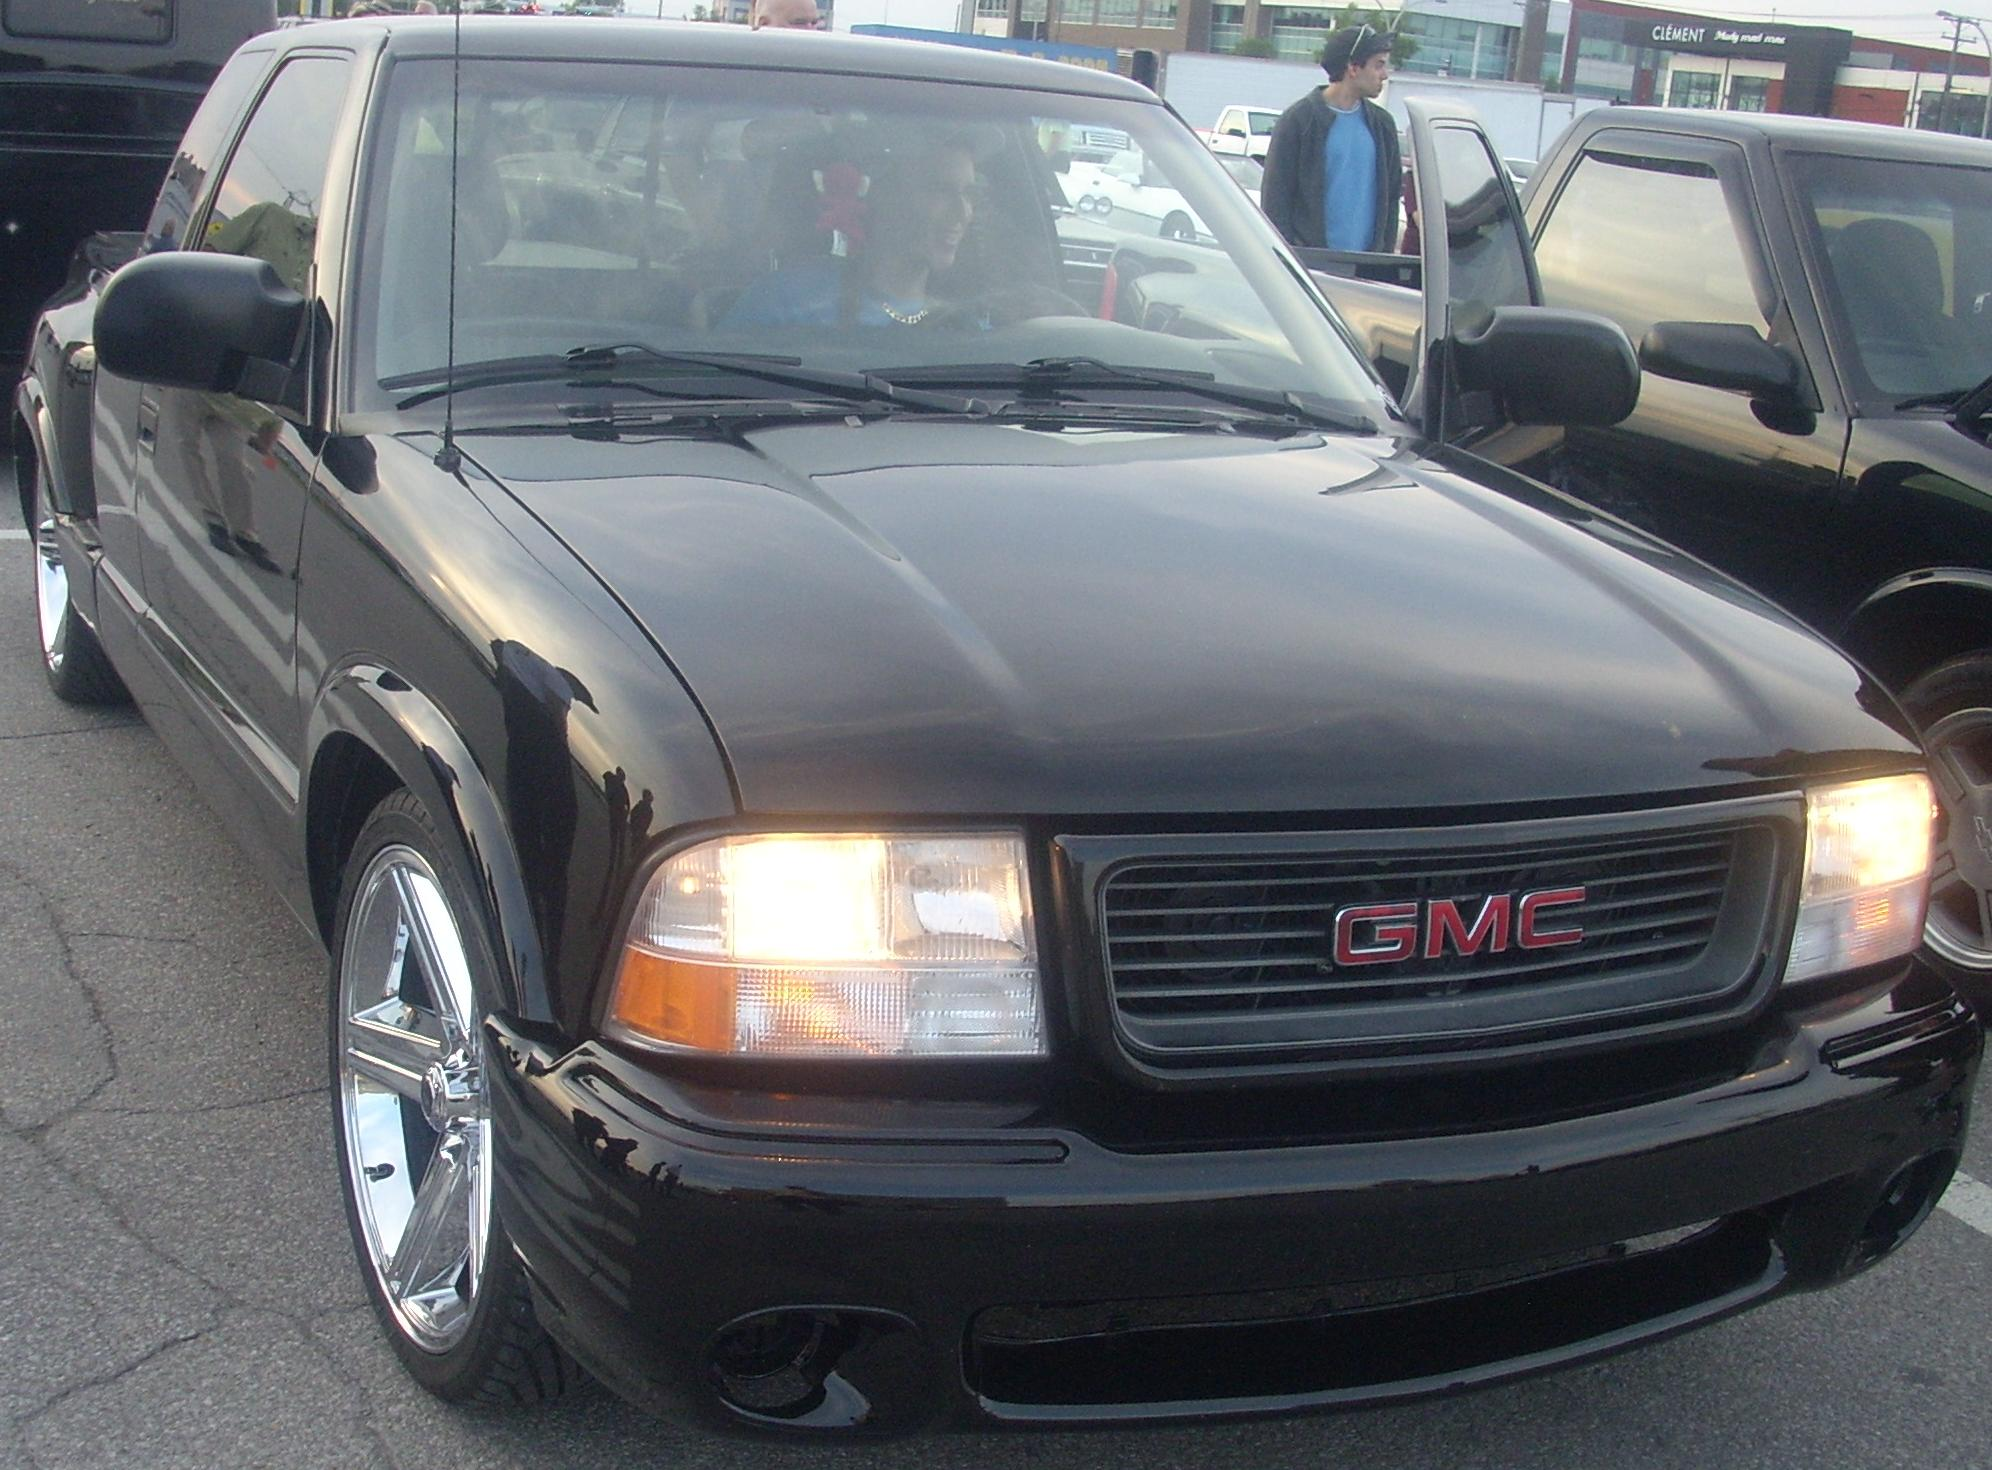 File Tuned Gmc Sonoma Extended Cab Les Chauds Vendredis 10 Jpg Wikimedia Commons